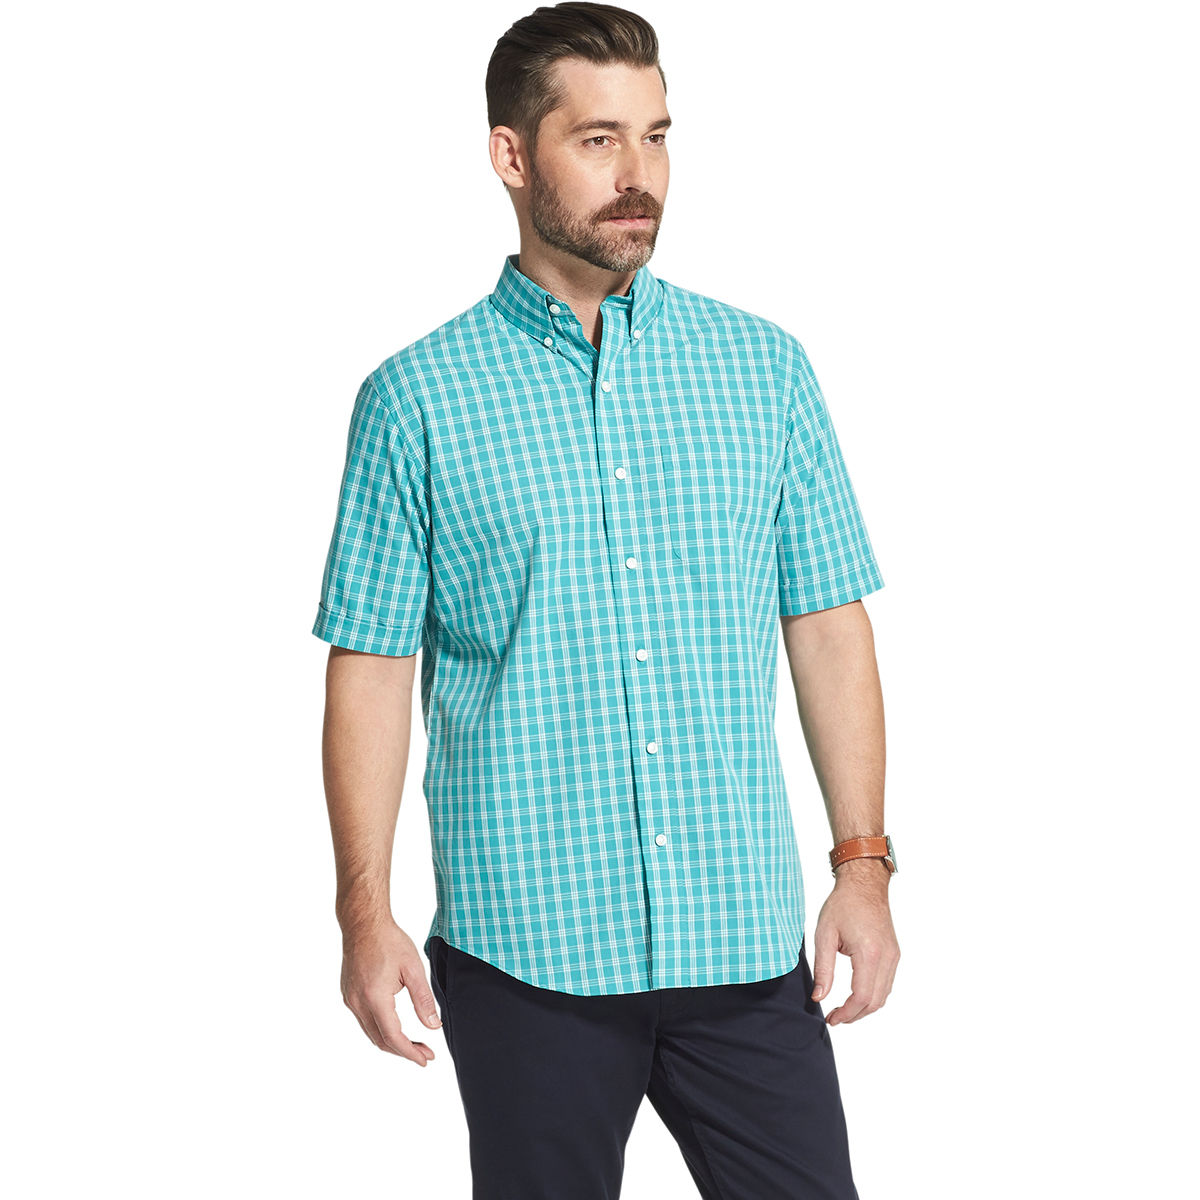 Arrow Men's Hamilton Short-Sleeve Shirt - Green, L